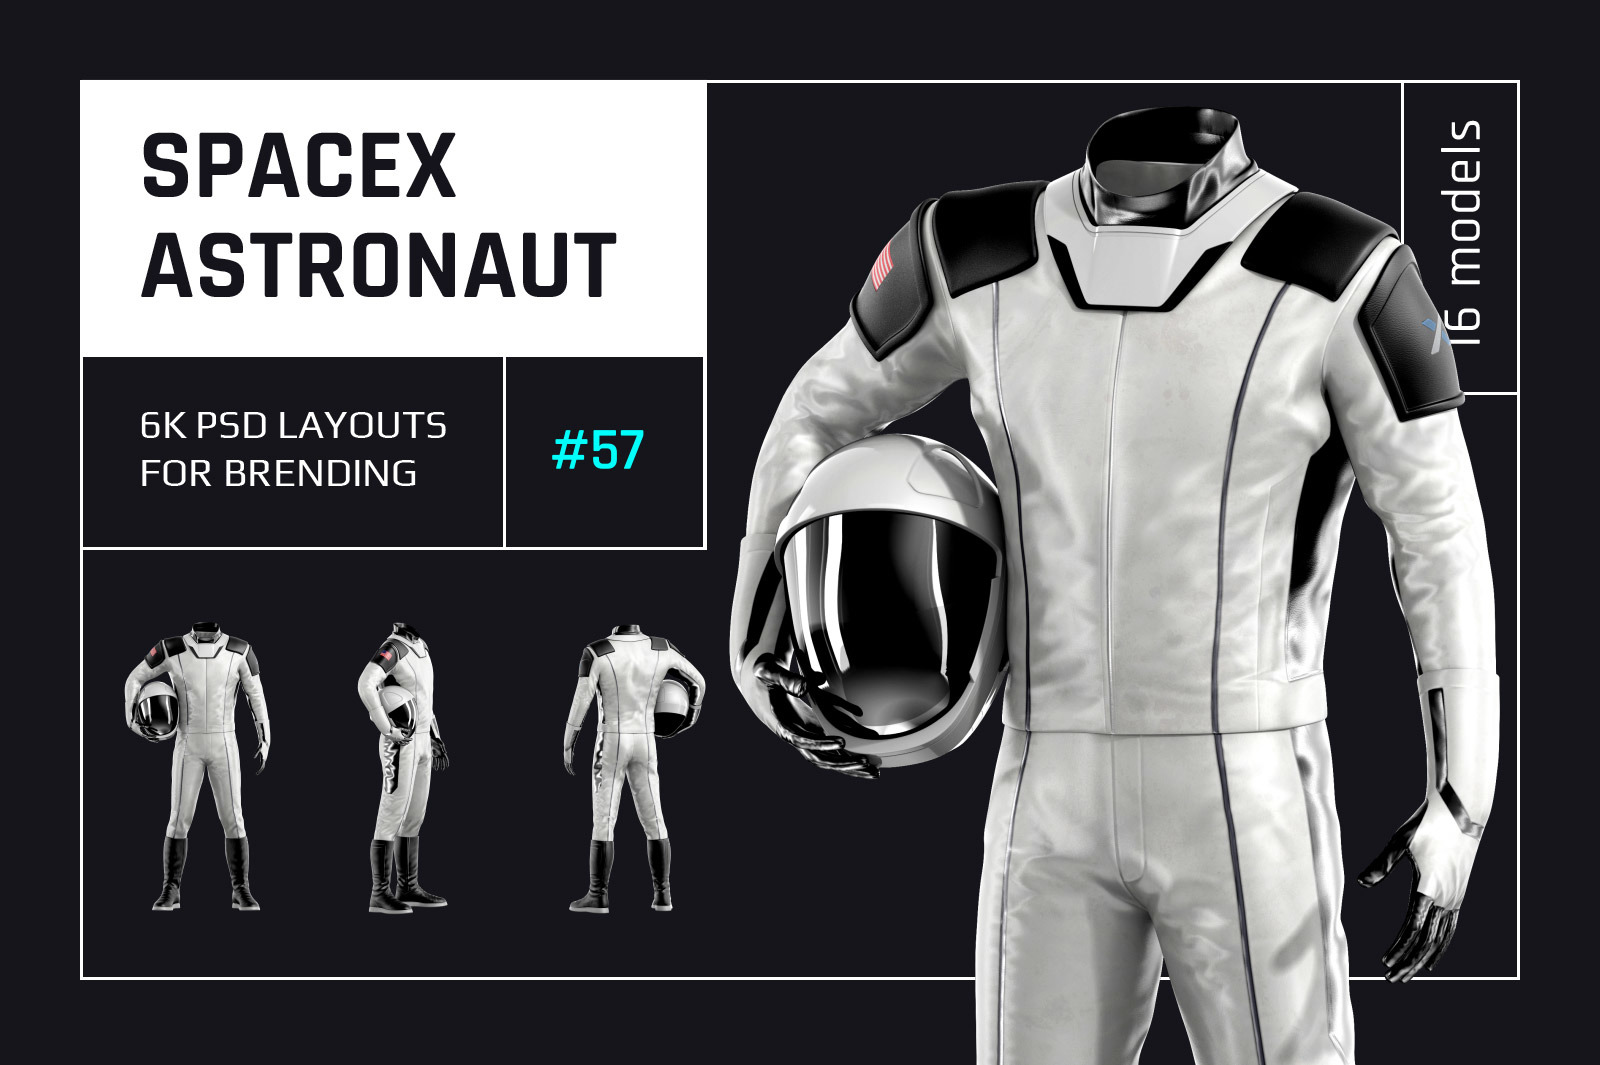 PSD Mockup 3D model SpaceX Astronaut #57